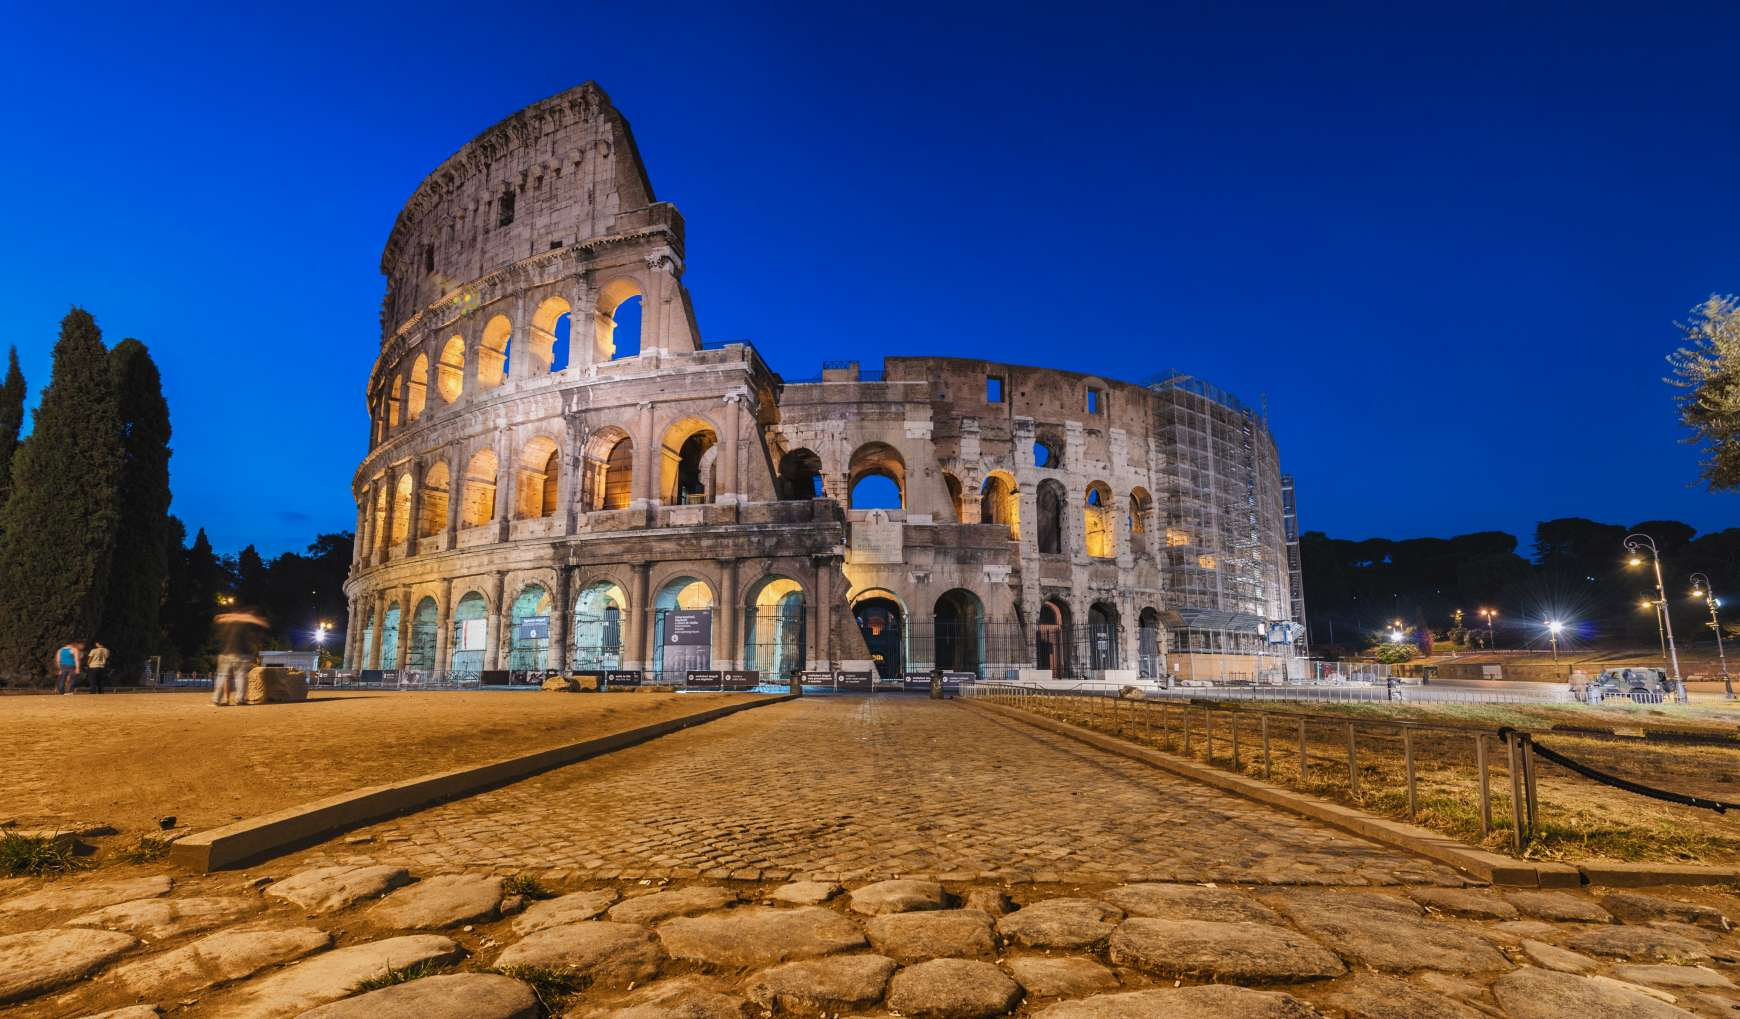 Night view exterior walls of the Colosseum in Rome